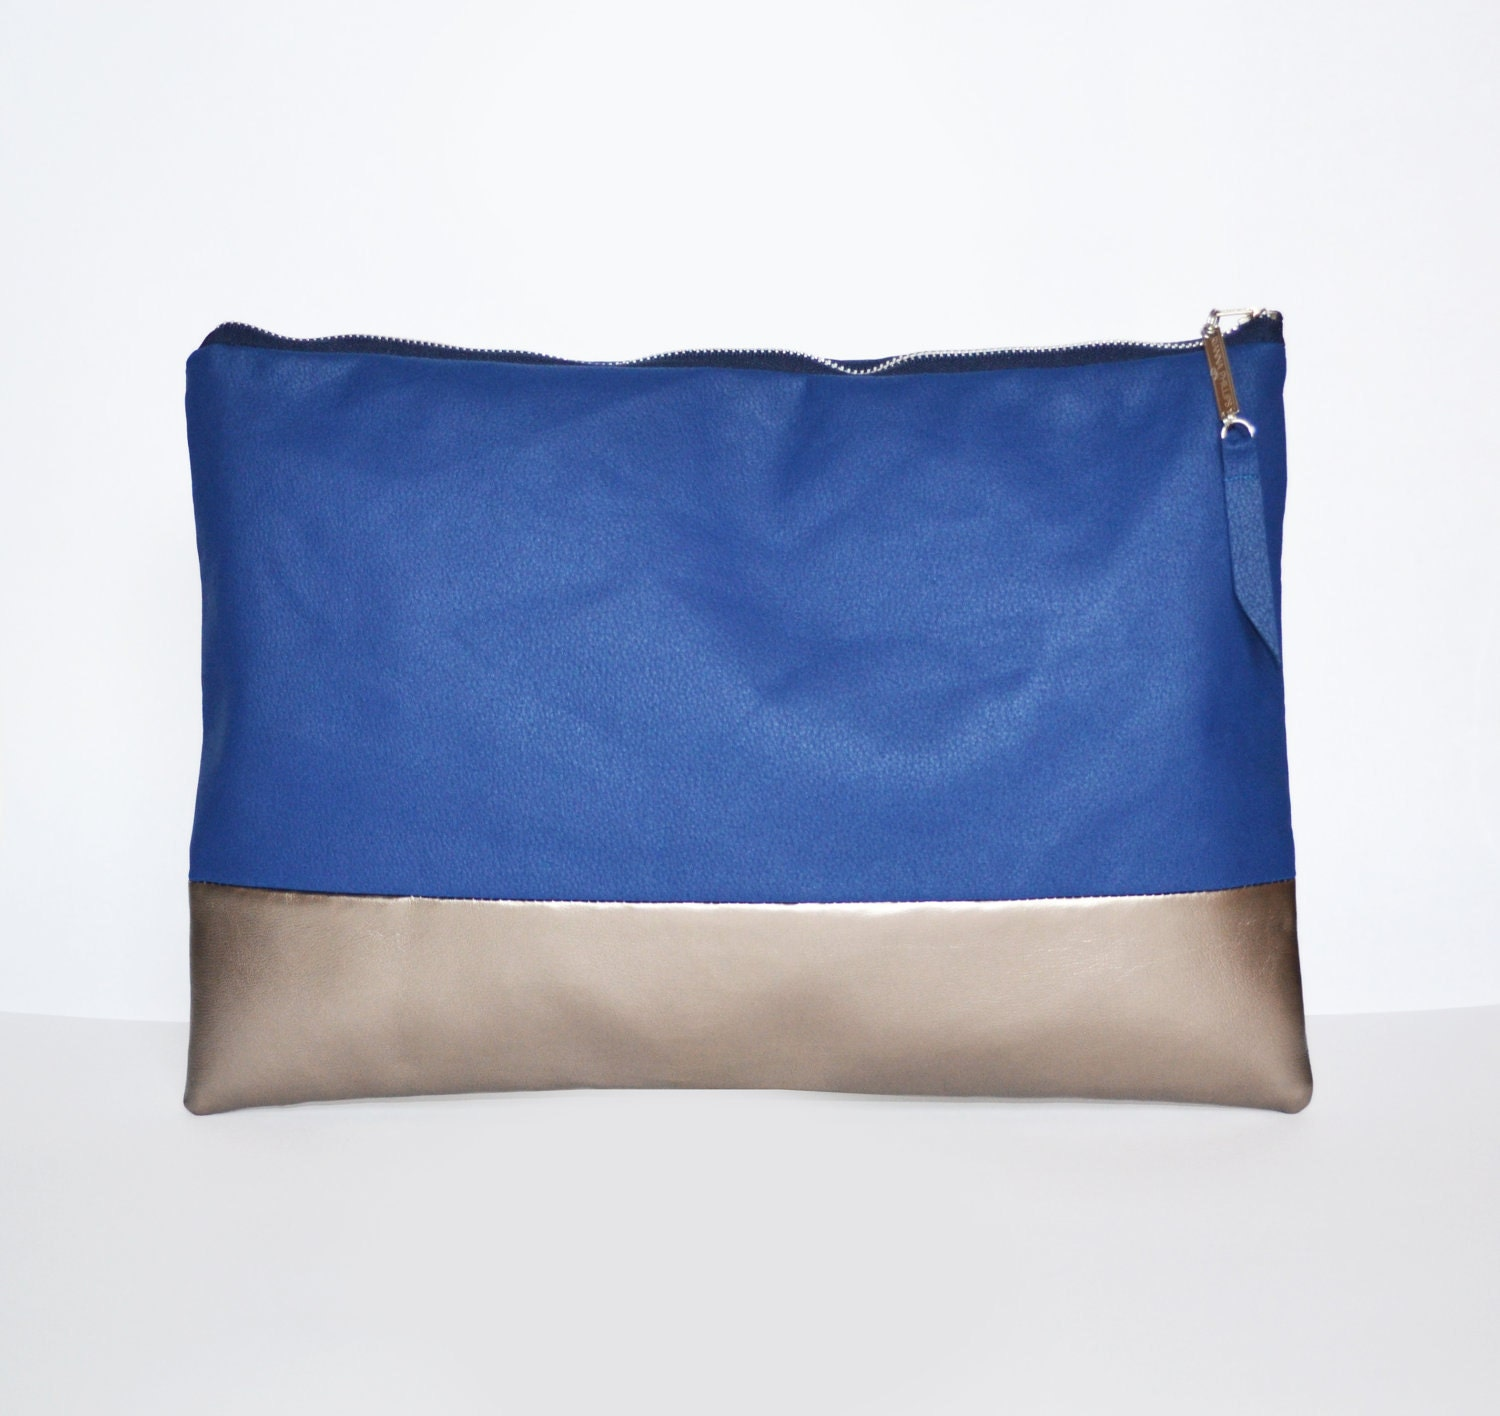 Large Cobalt Blue and Pewter Portfolio Clutch Bag